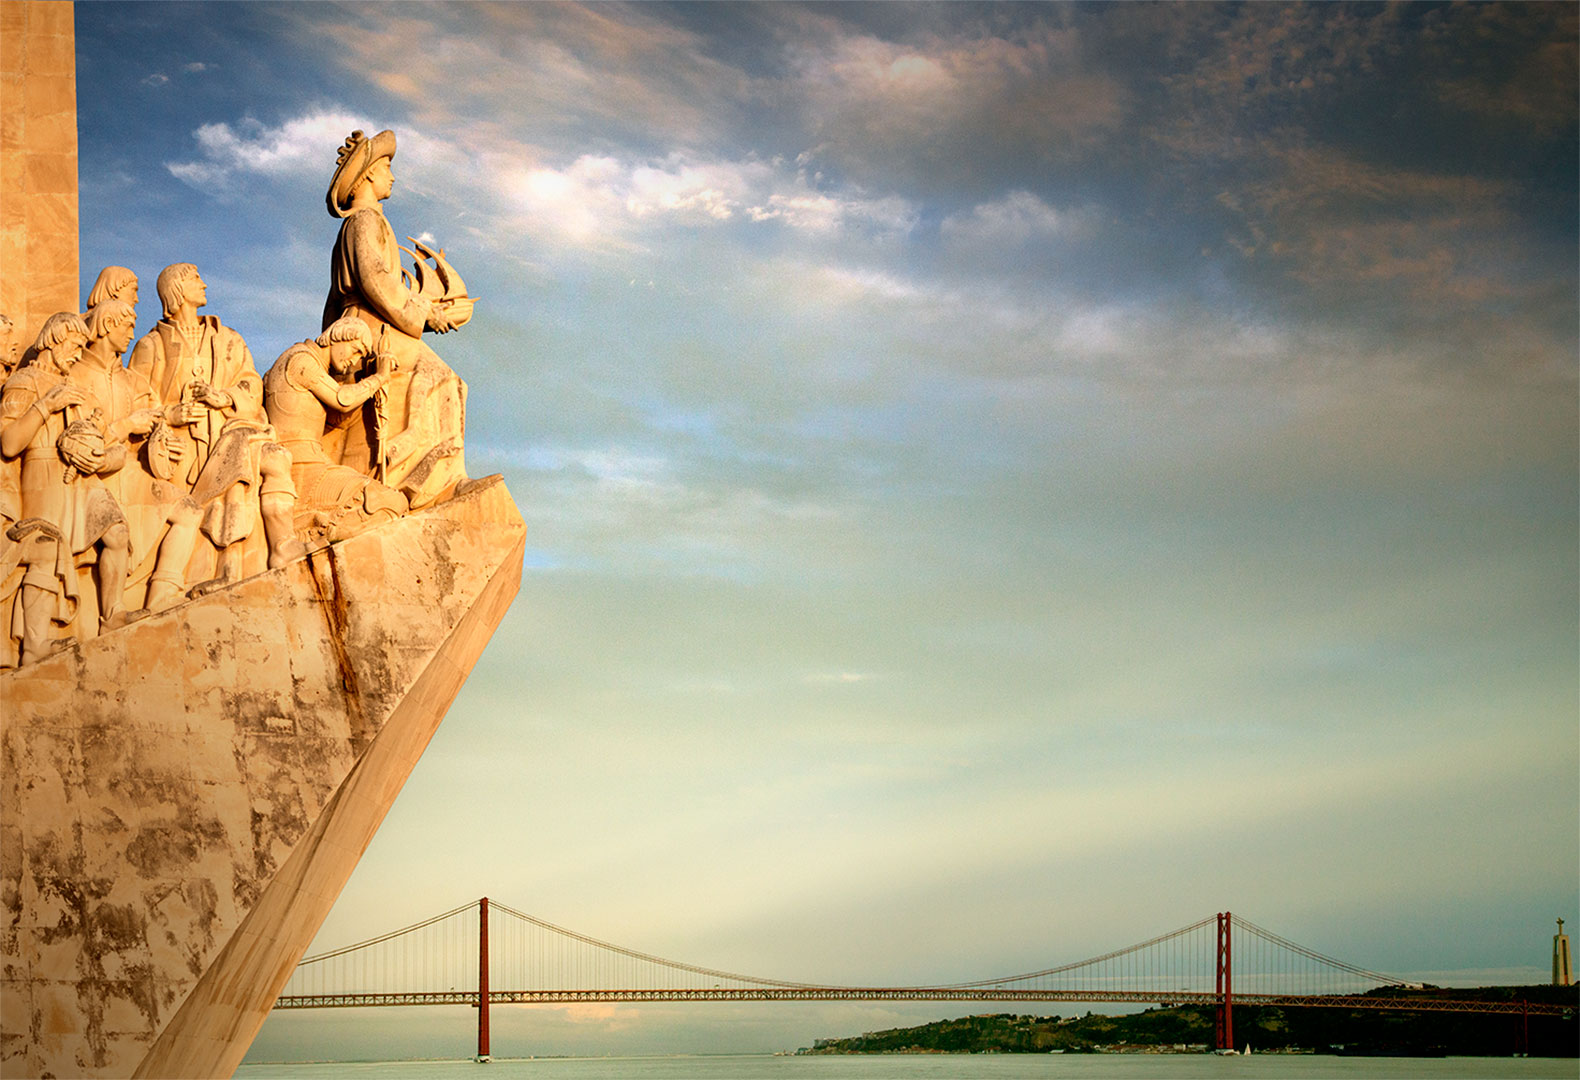 Suspended bridge, lisbon, portugal